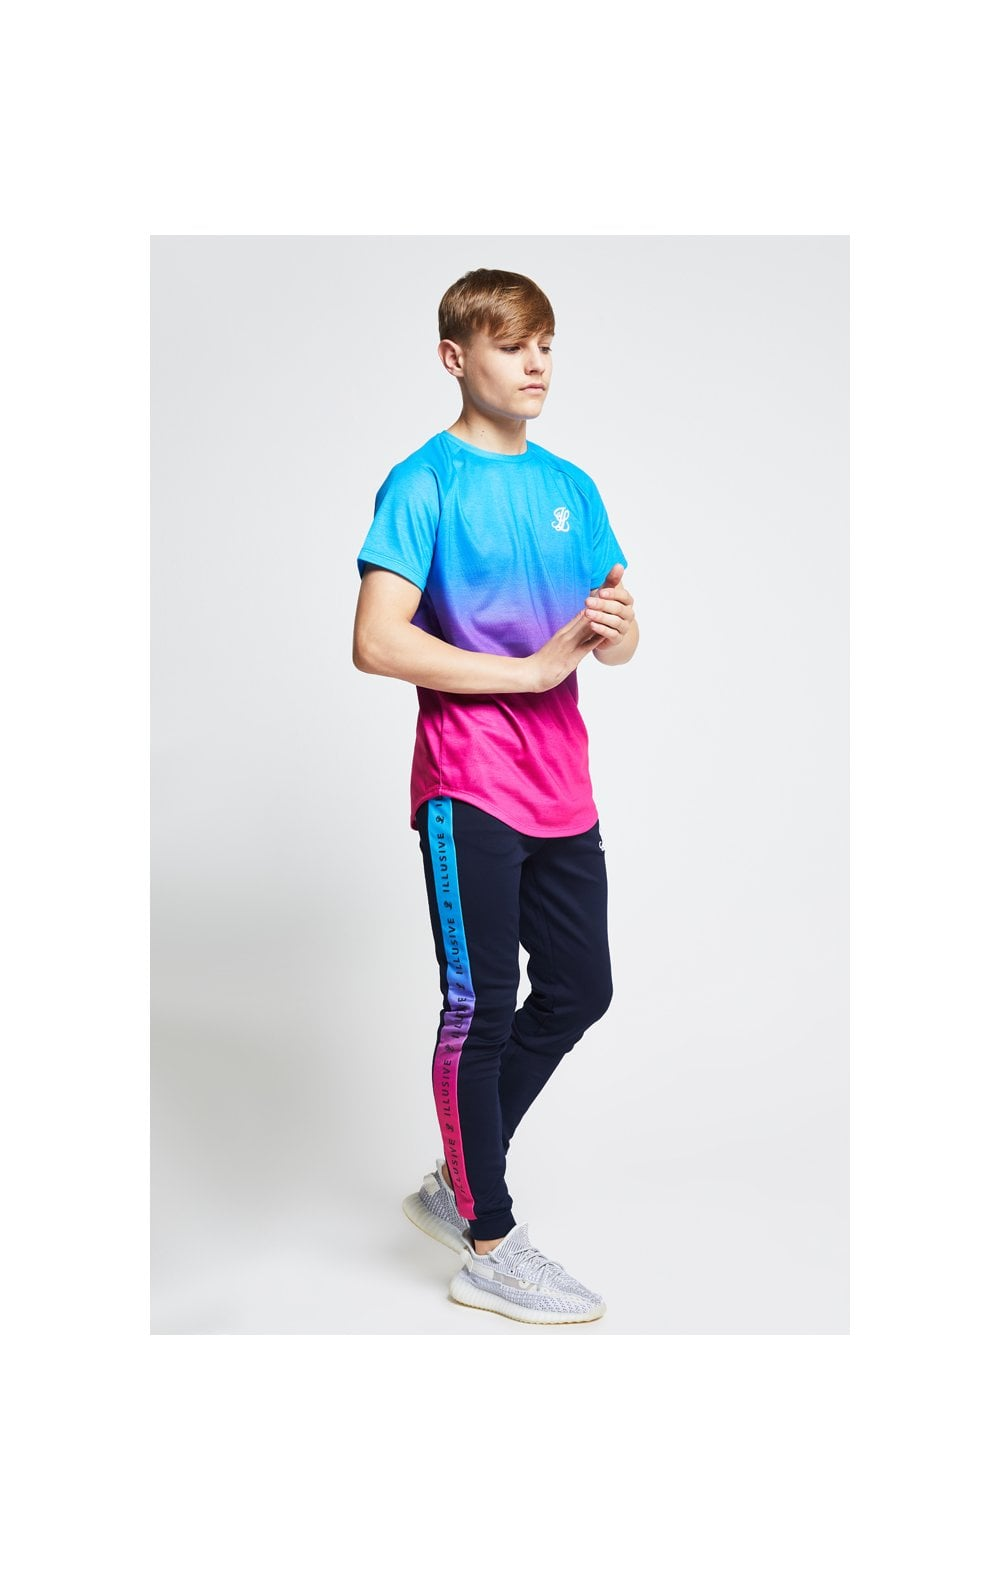 Illusive London Fade Tee - Blue & Pink (3)